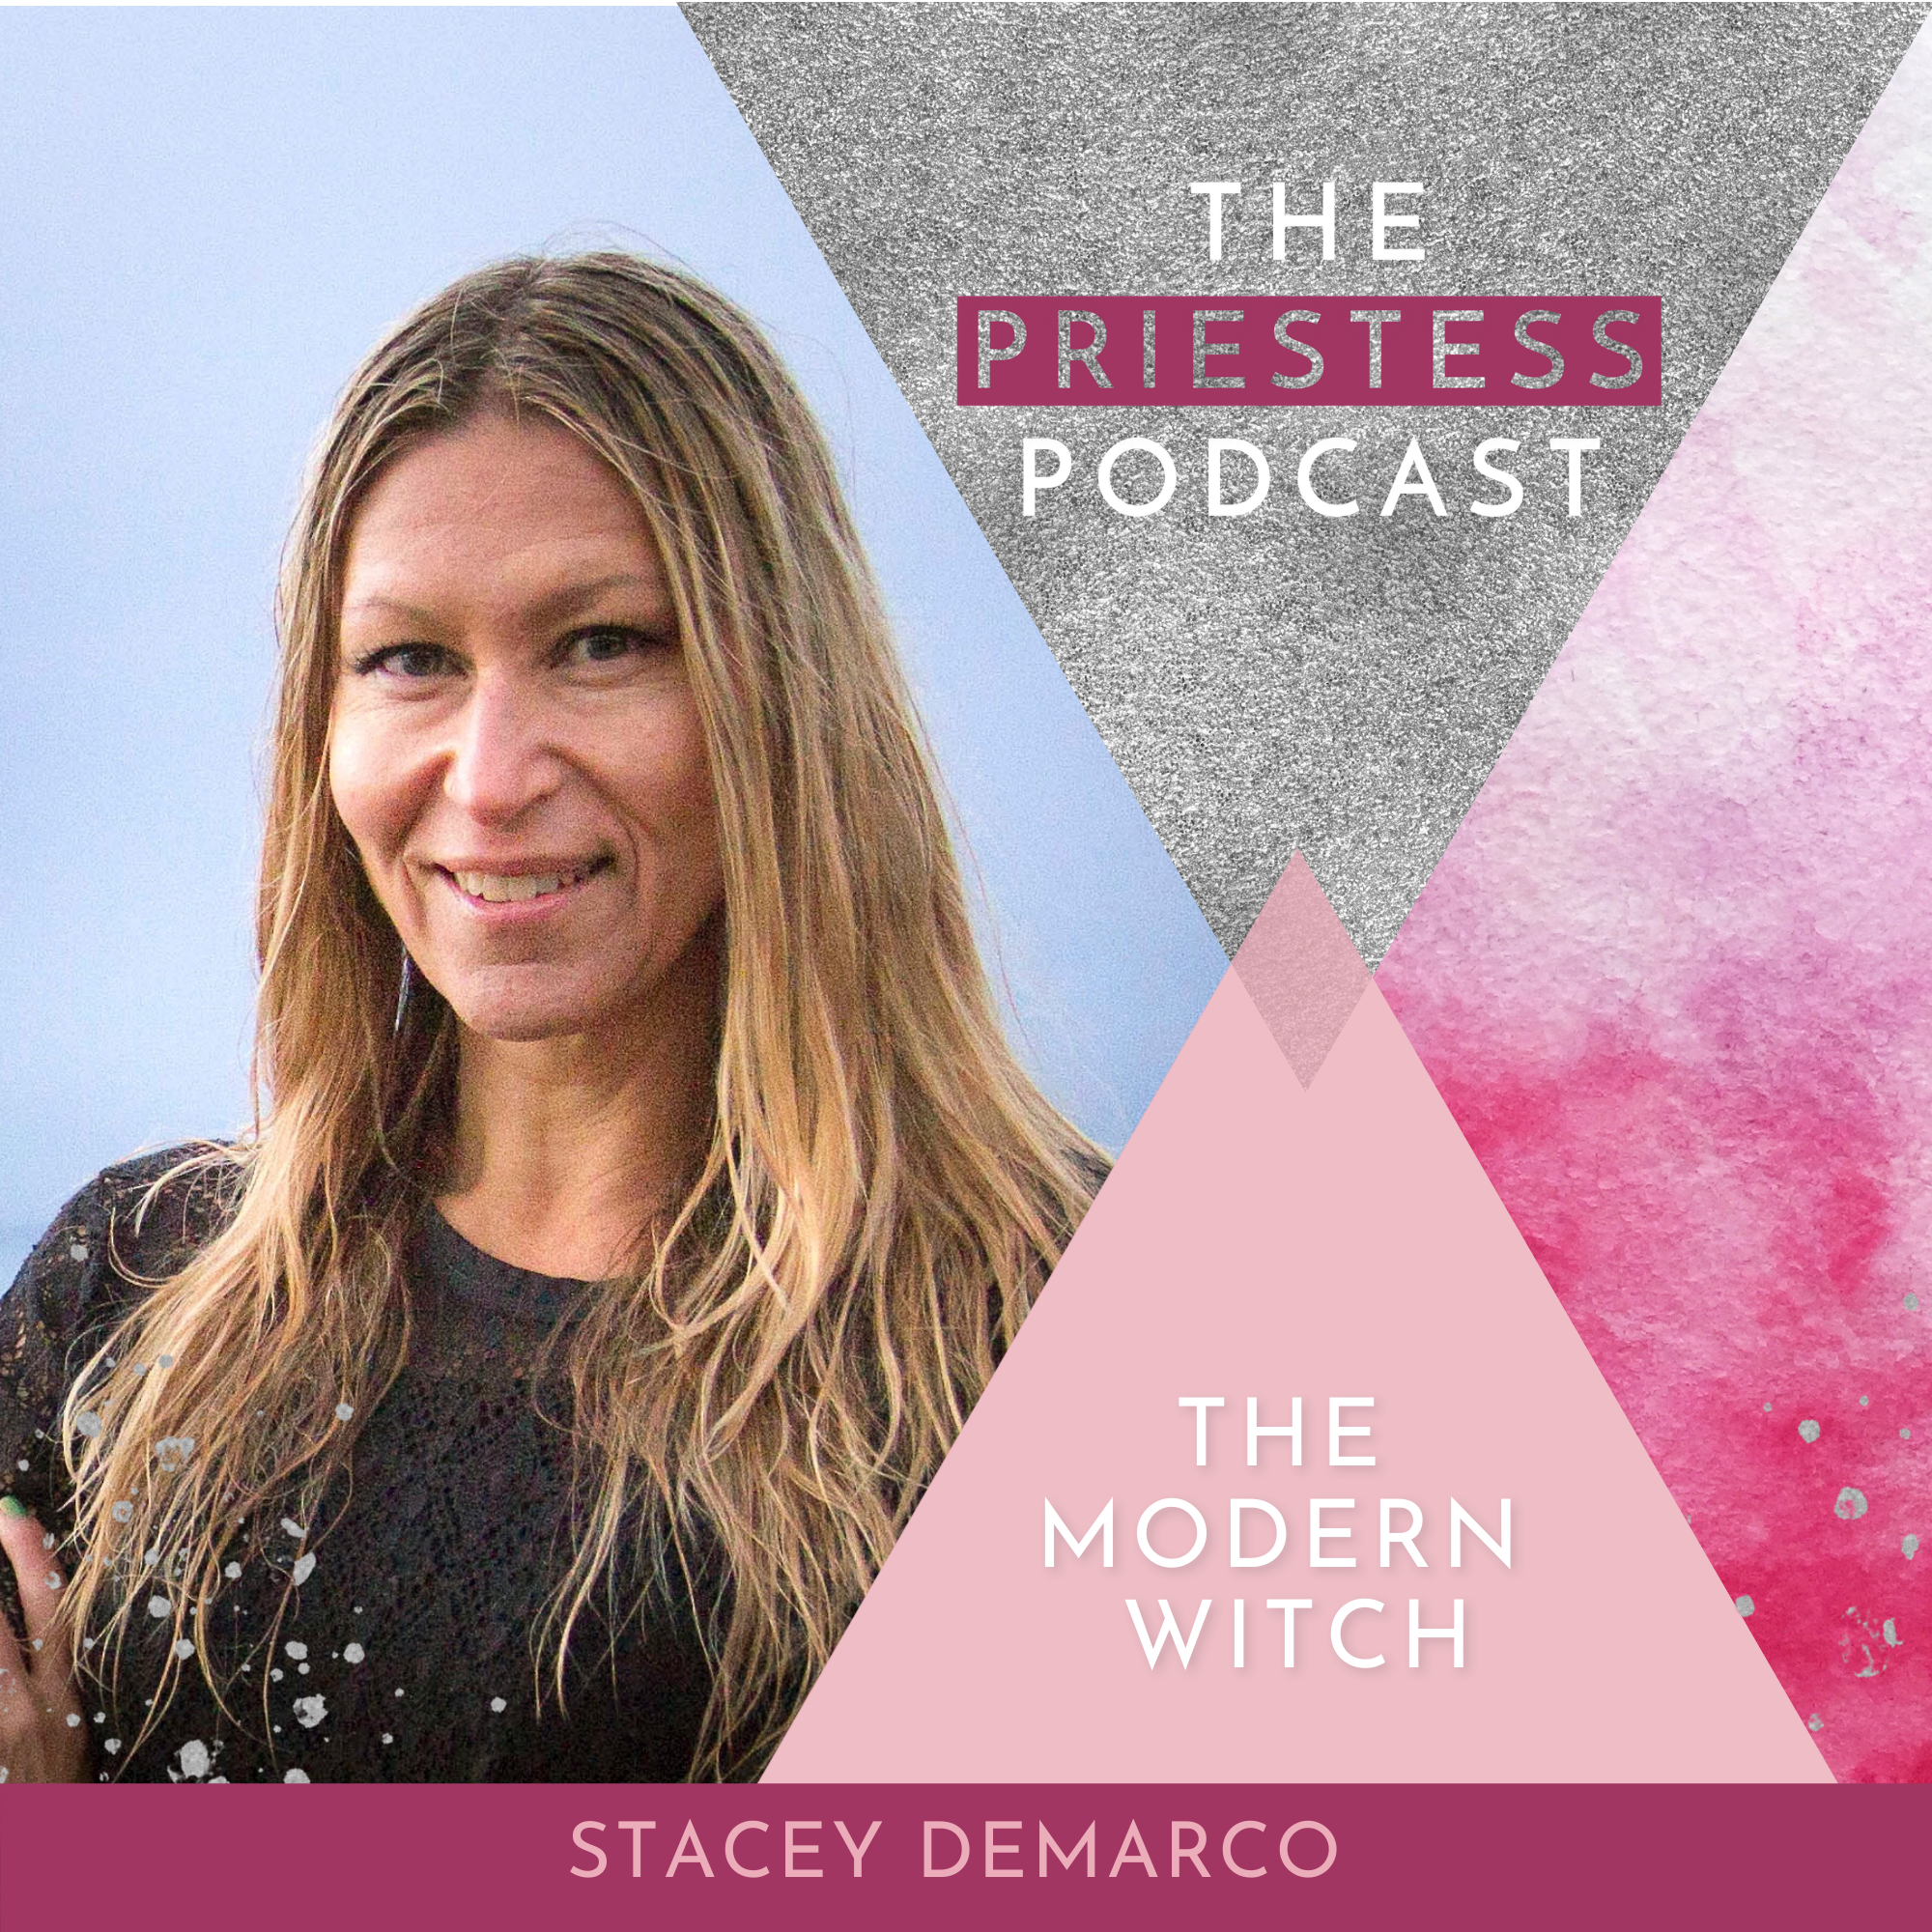 Stacey Demarco on The Modern Witch